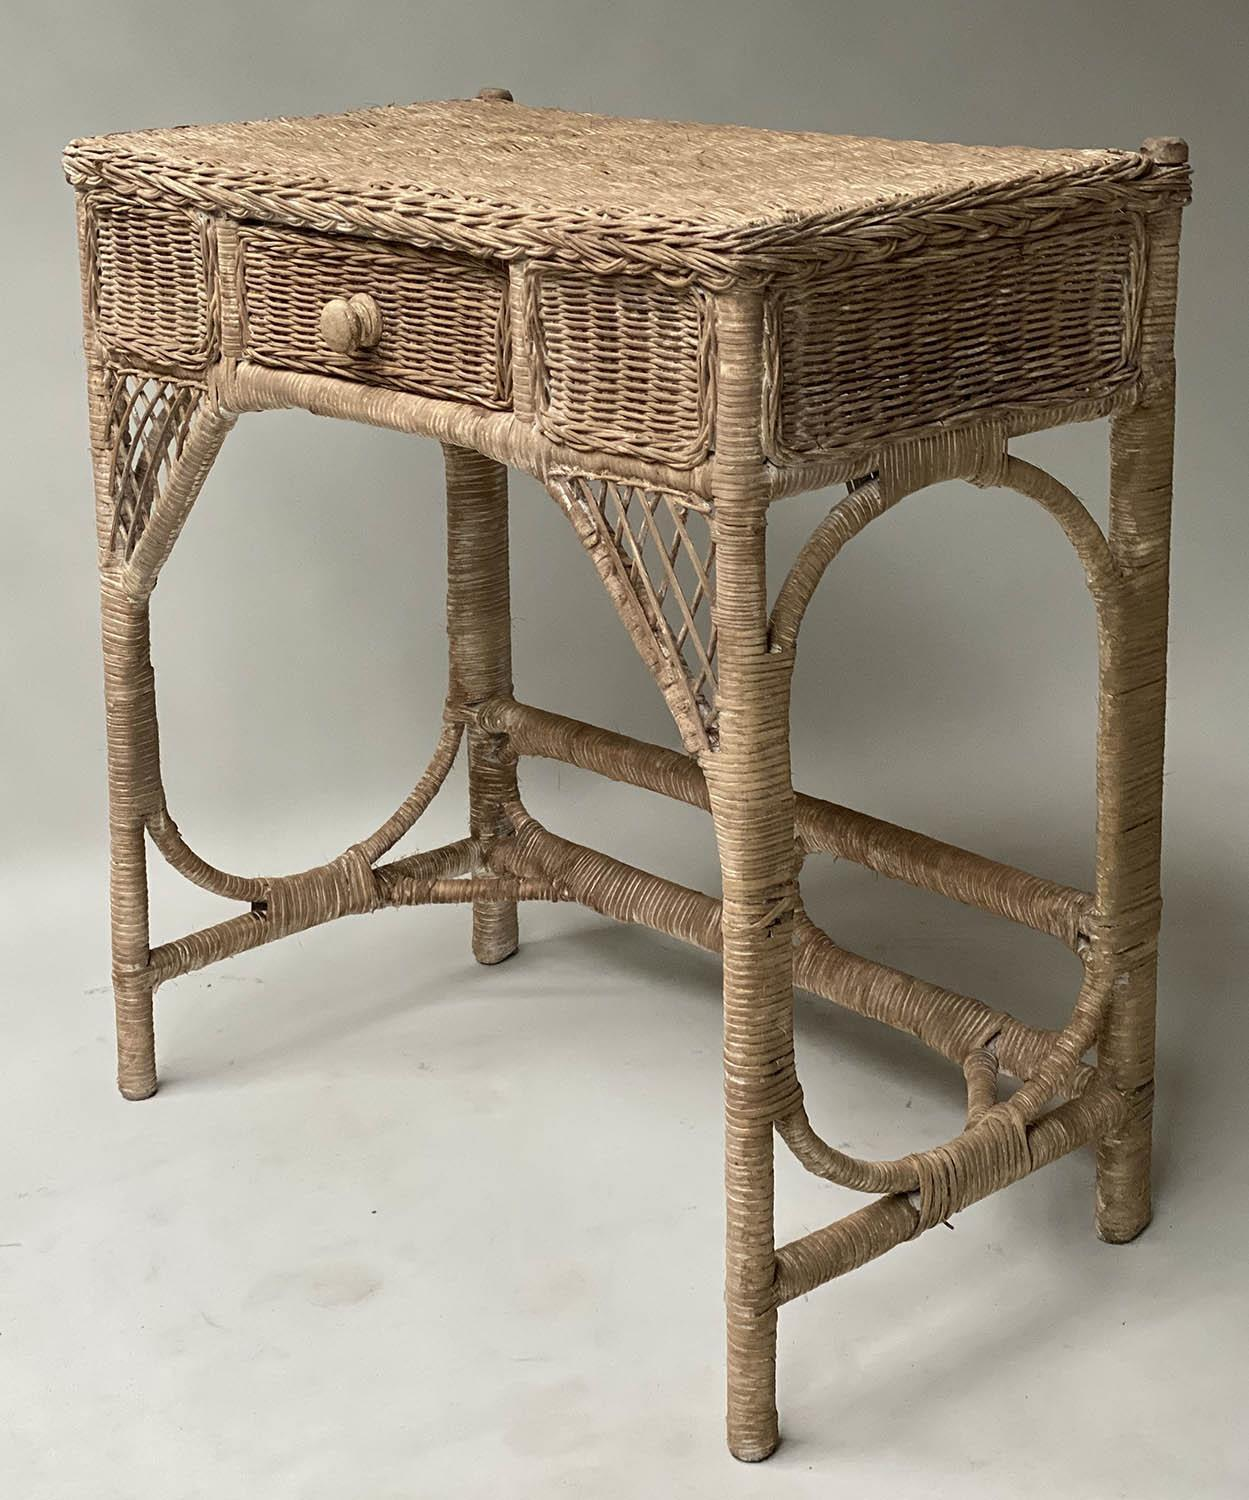 CONSOLE/HALL TABLE, vintage rattan and cane woven, with frieze drawer, 76cm W x 77cm x 42cm. - Image 3 of 7